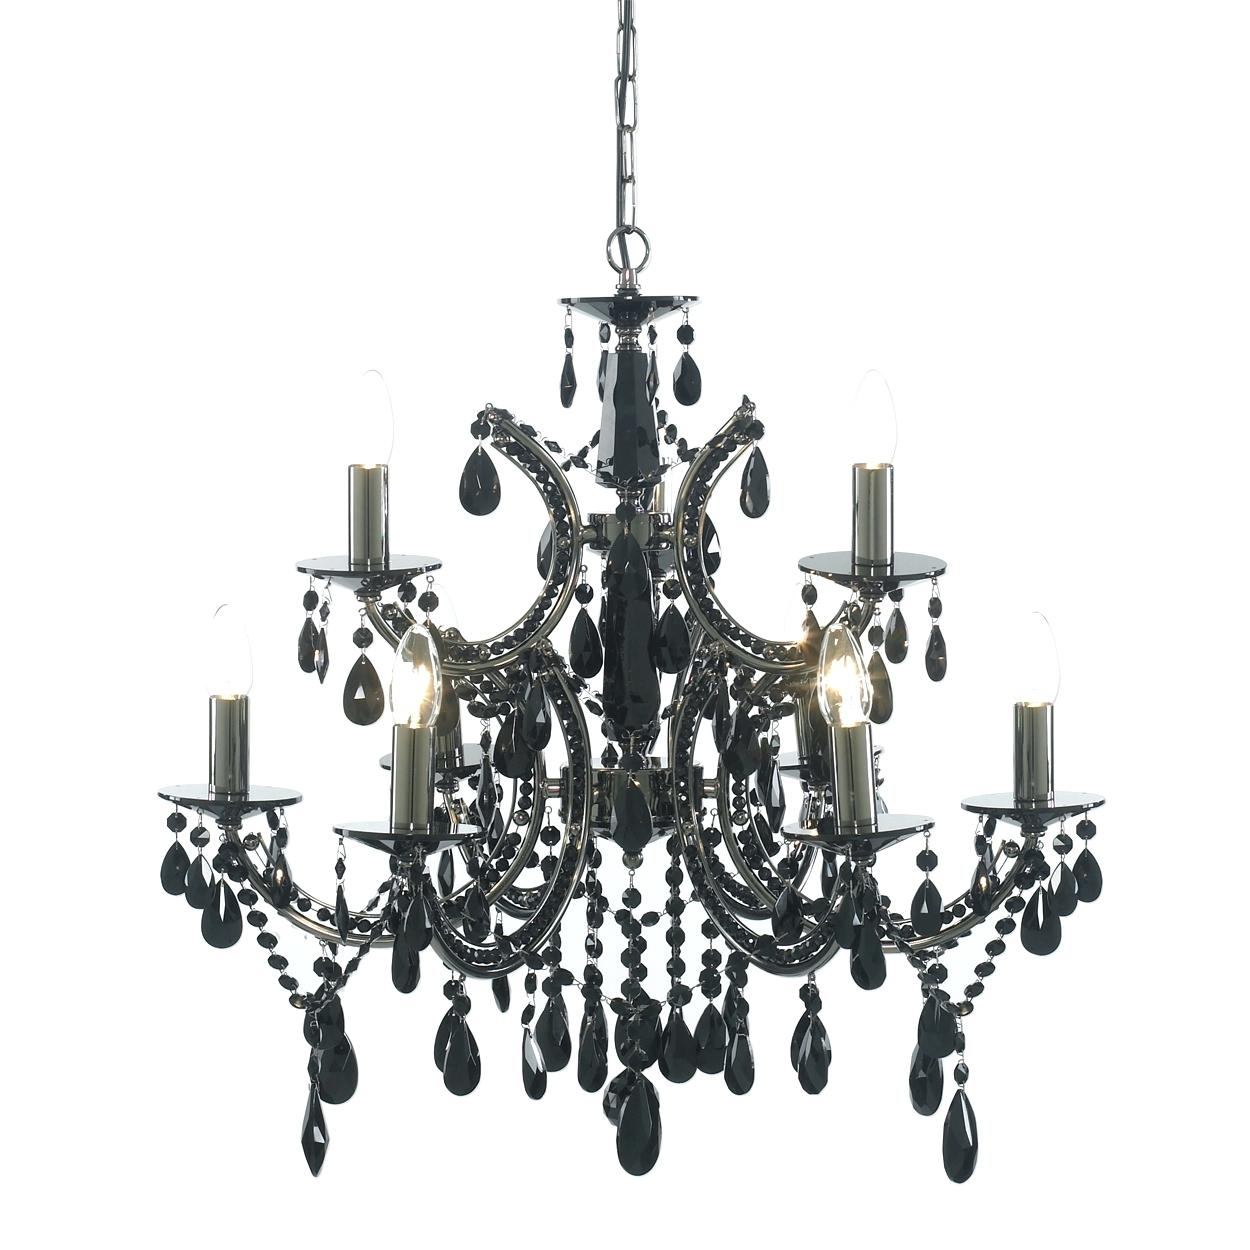 Wood And Iron Chandelier Mini Black Chandeliers With Crystals Pertaining To Contemporary Black Chandelier (Image 15 of 15)